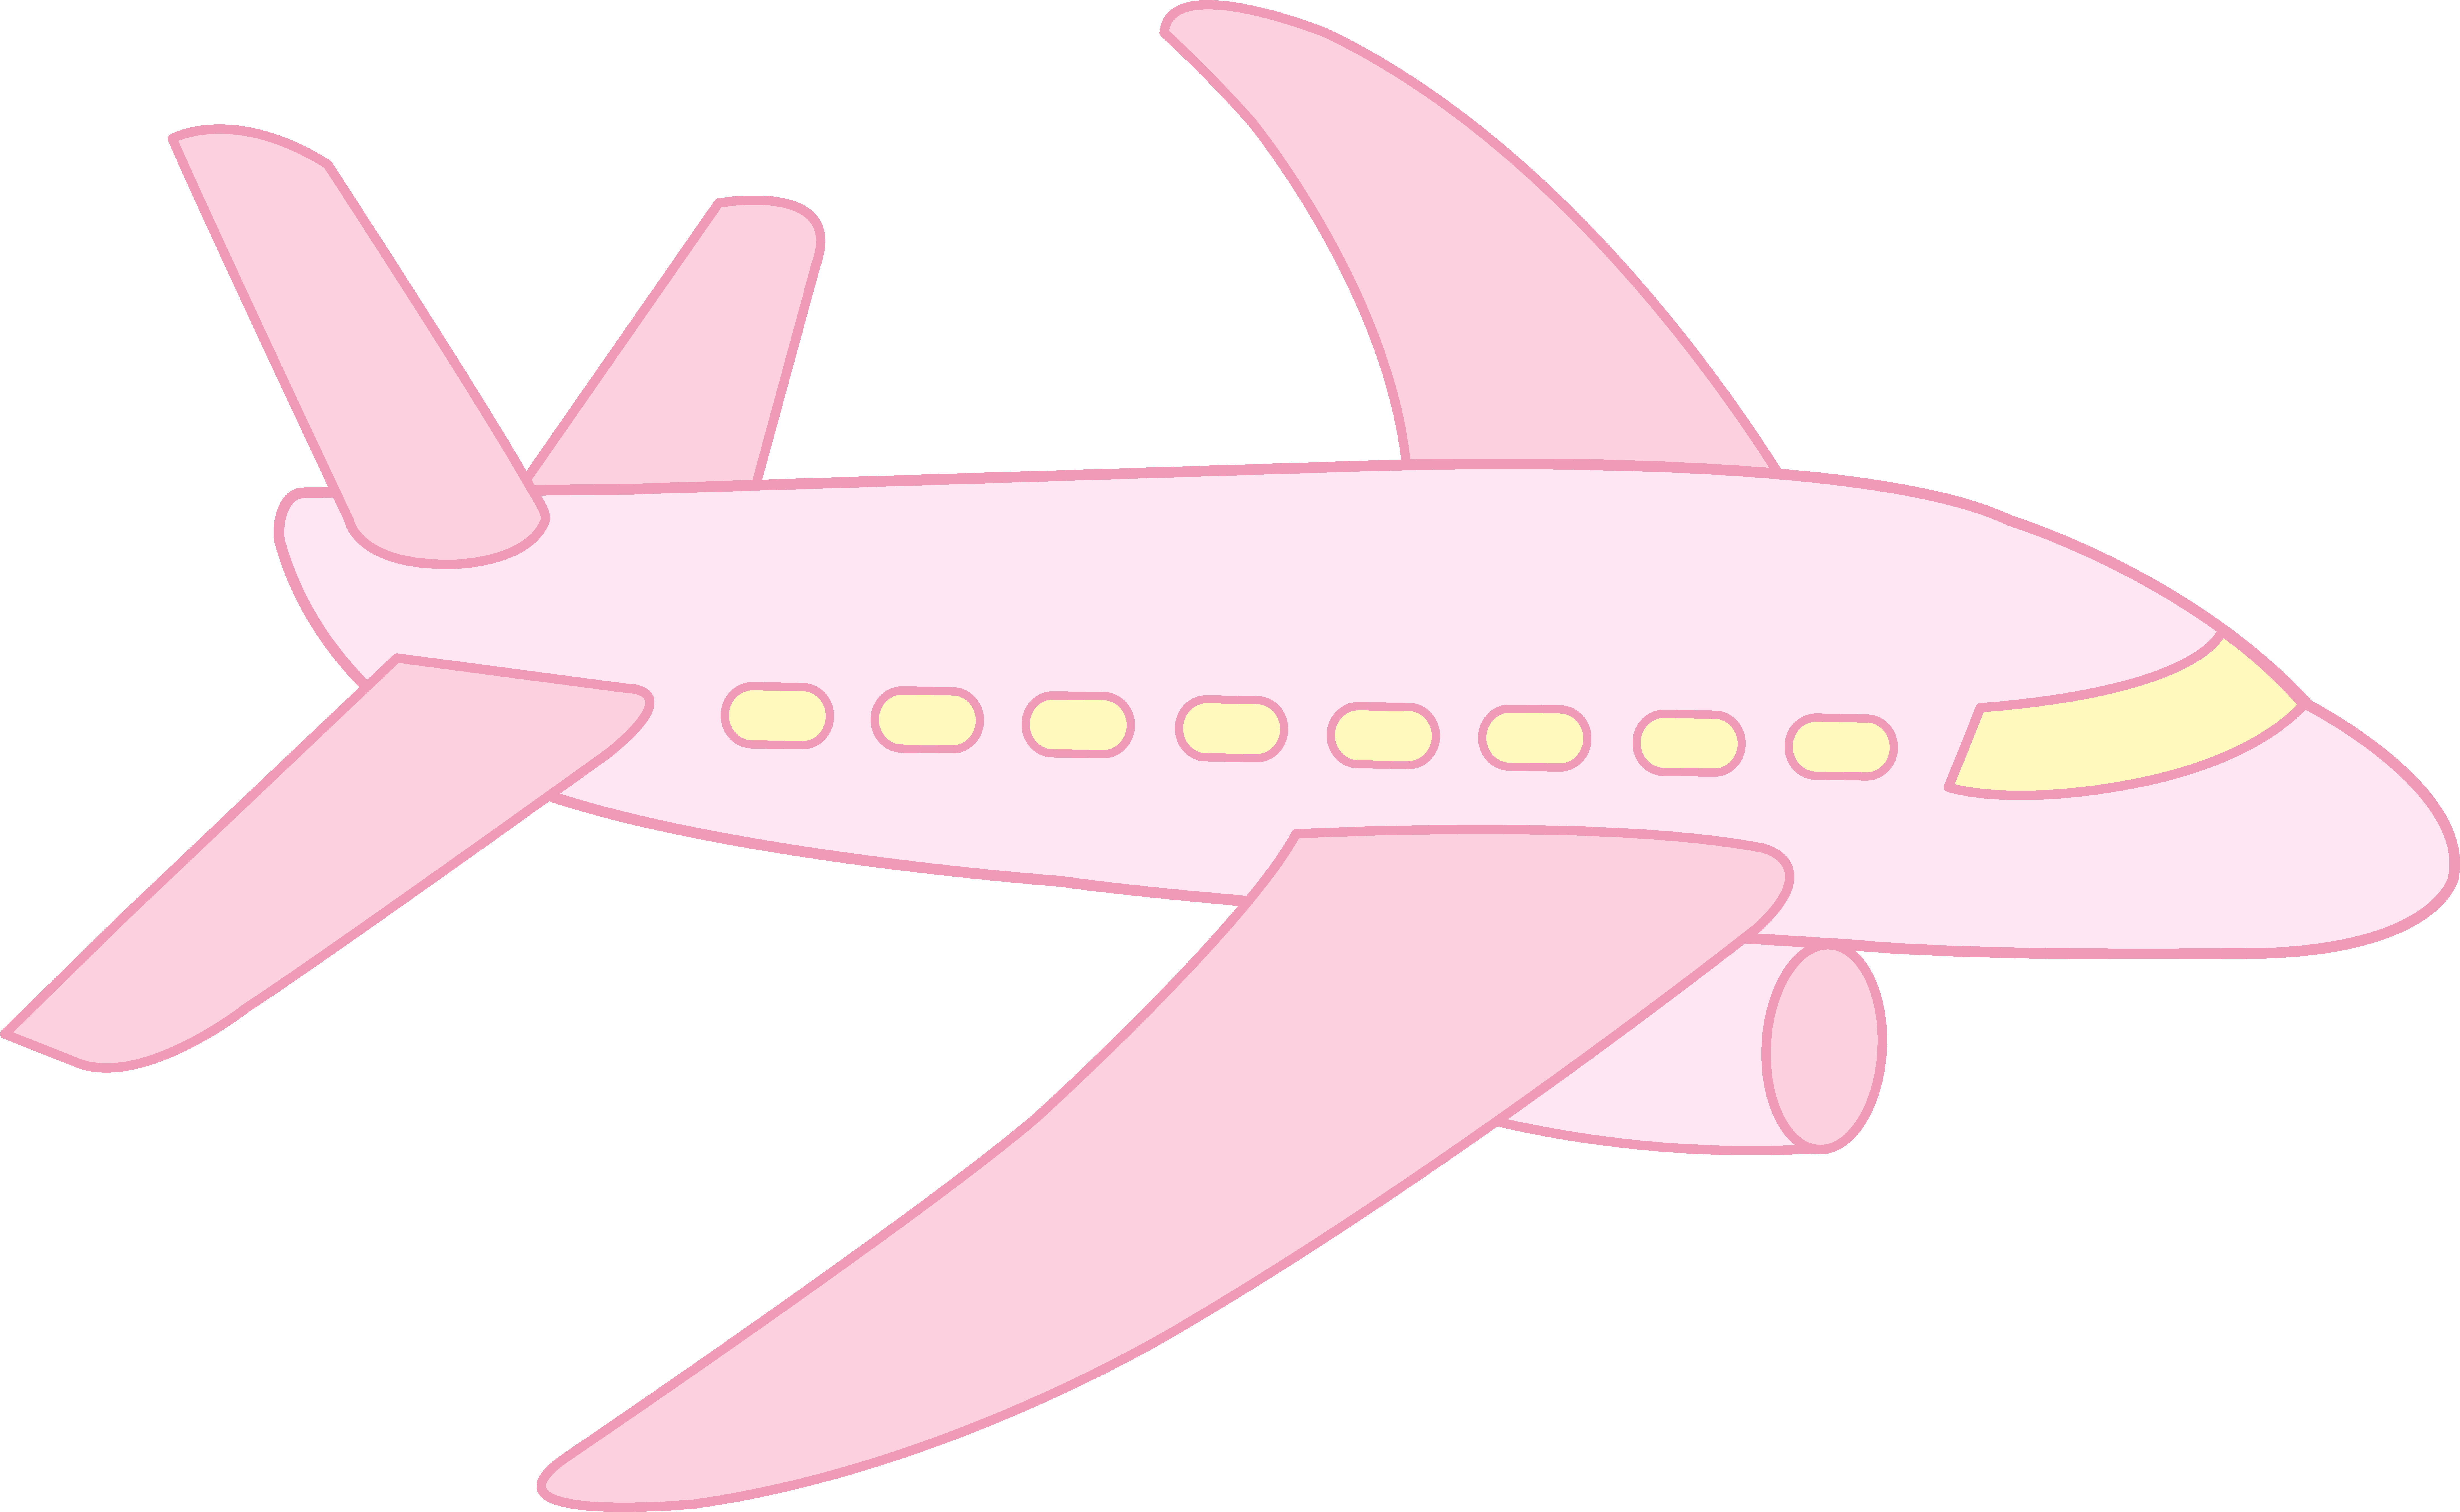 Drawn airplane animated Art Clipartwork #662 — Clipart